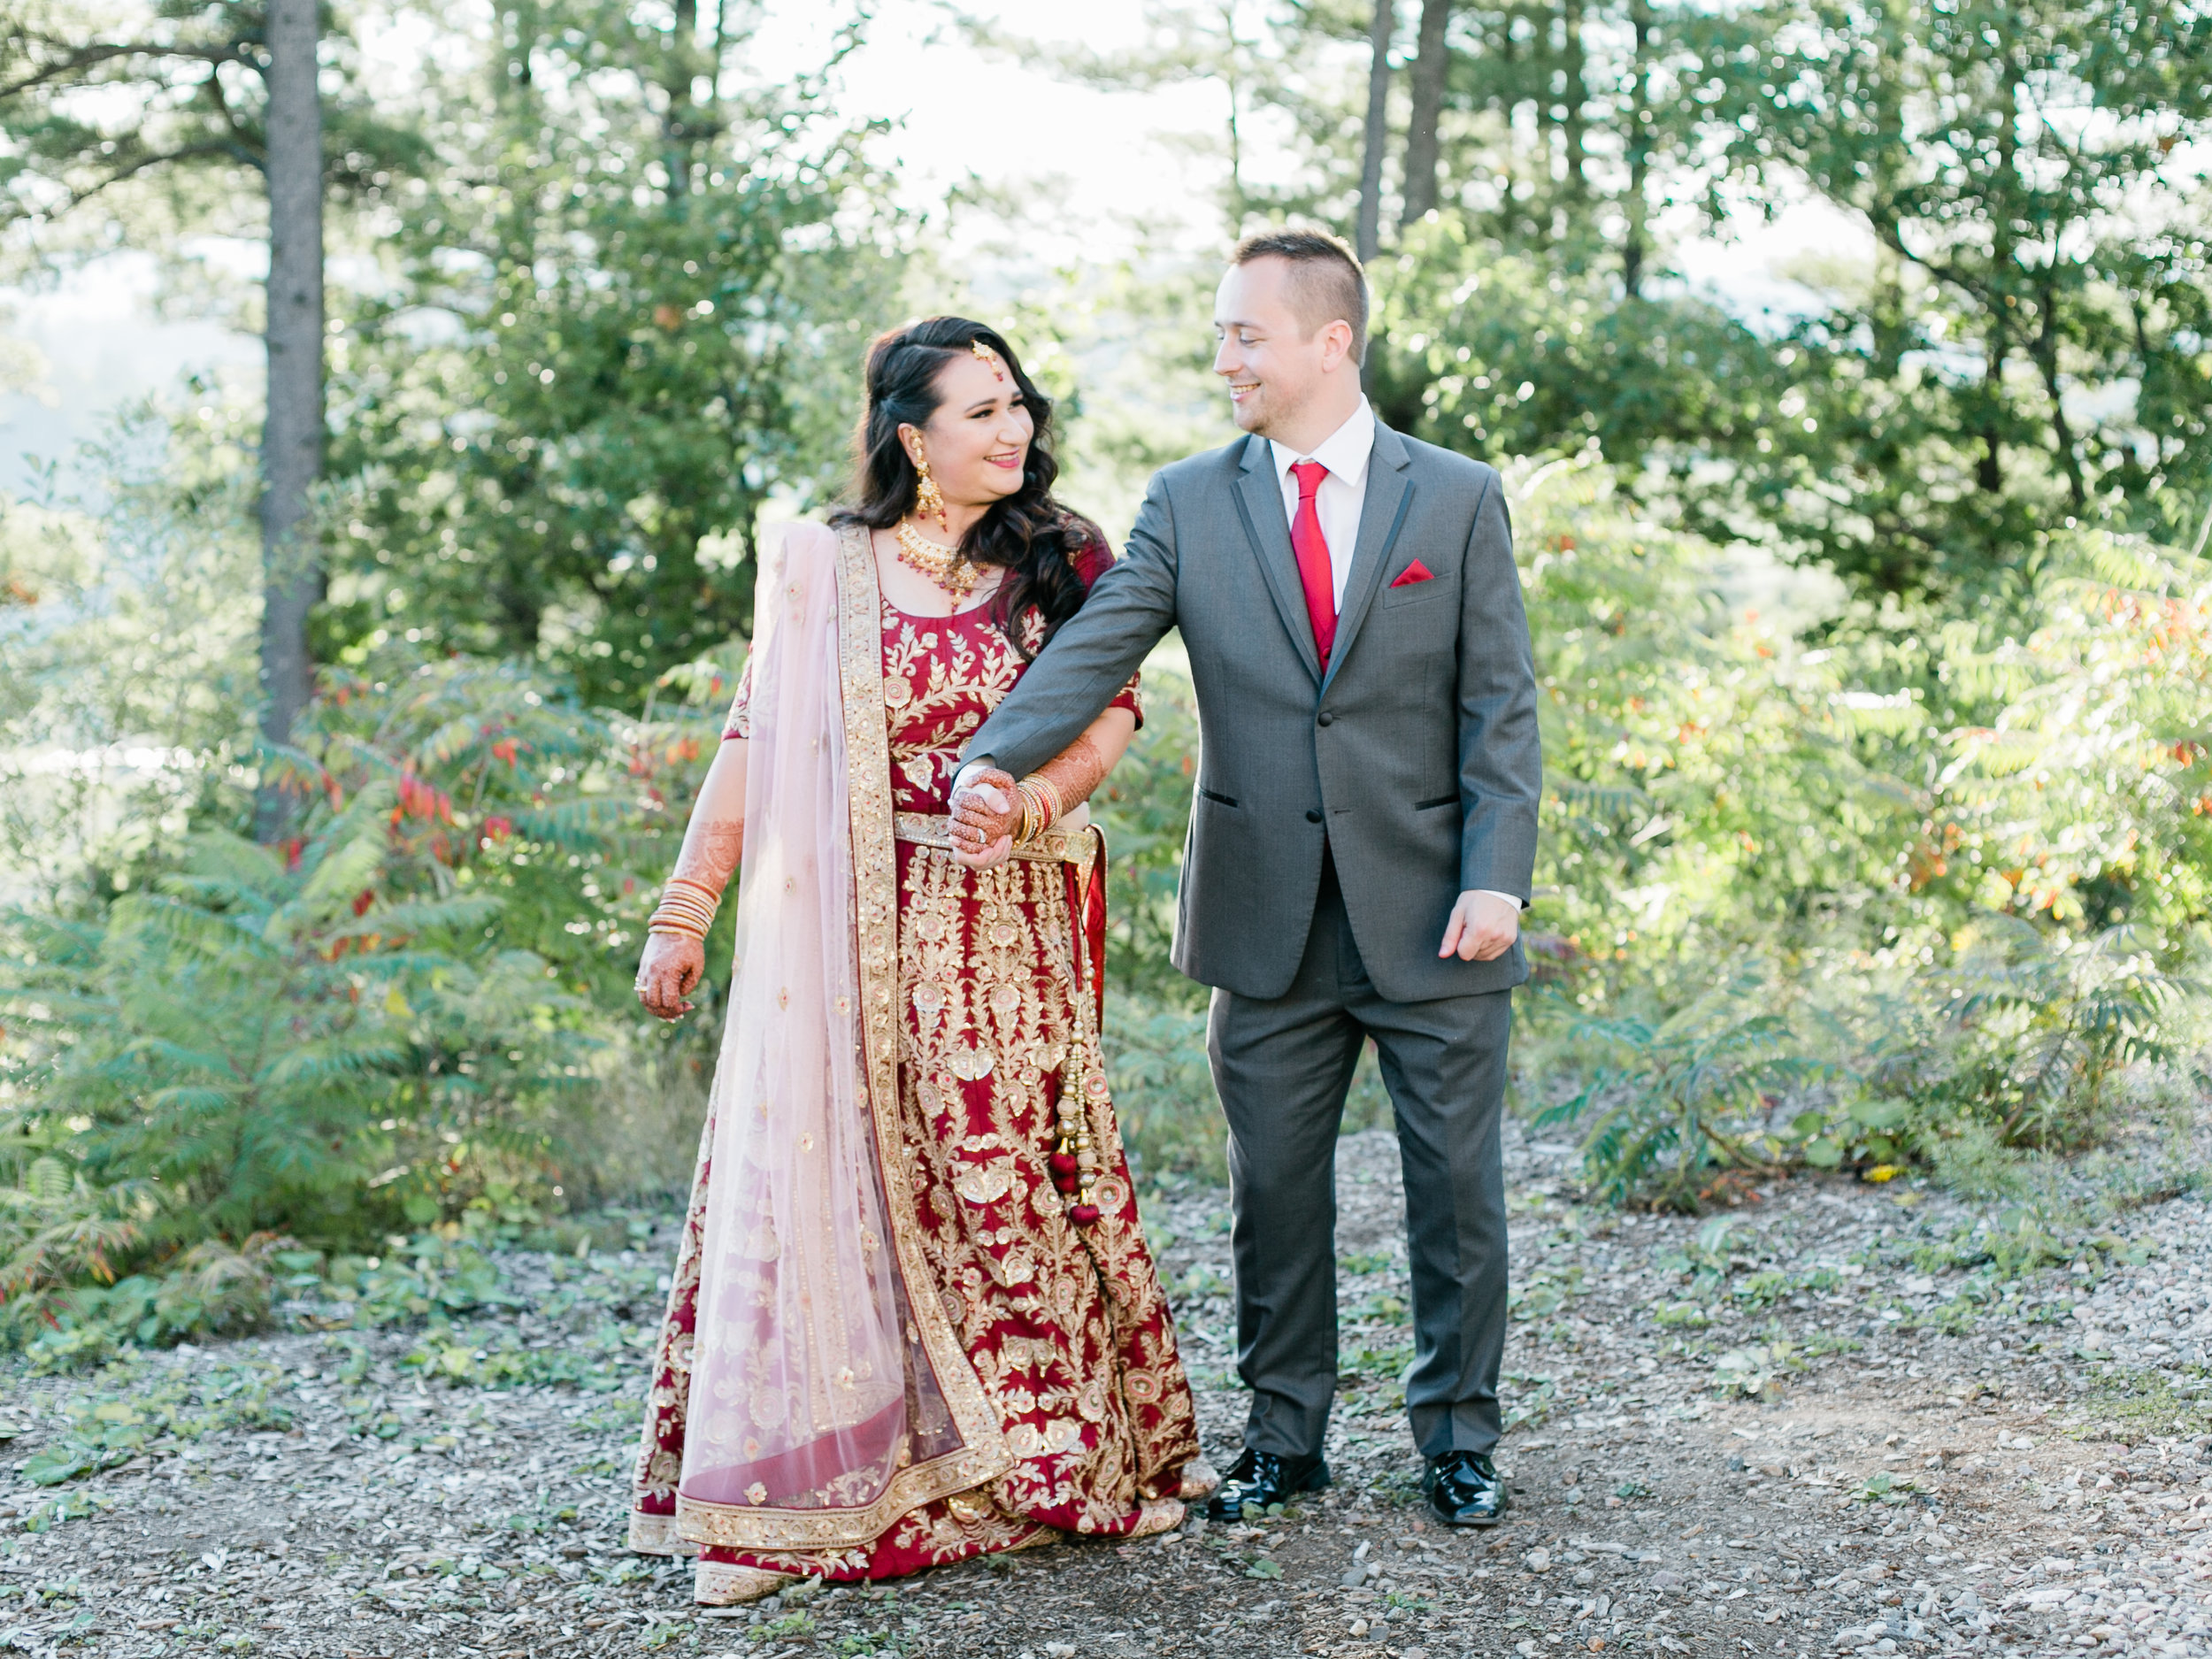 LeBelvedere_MountainTopWedding_StephanieMasonPhotography-262.jpg